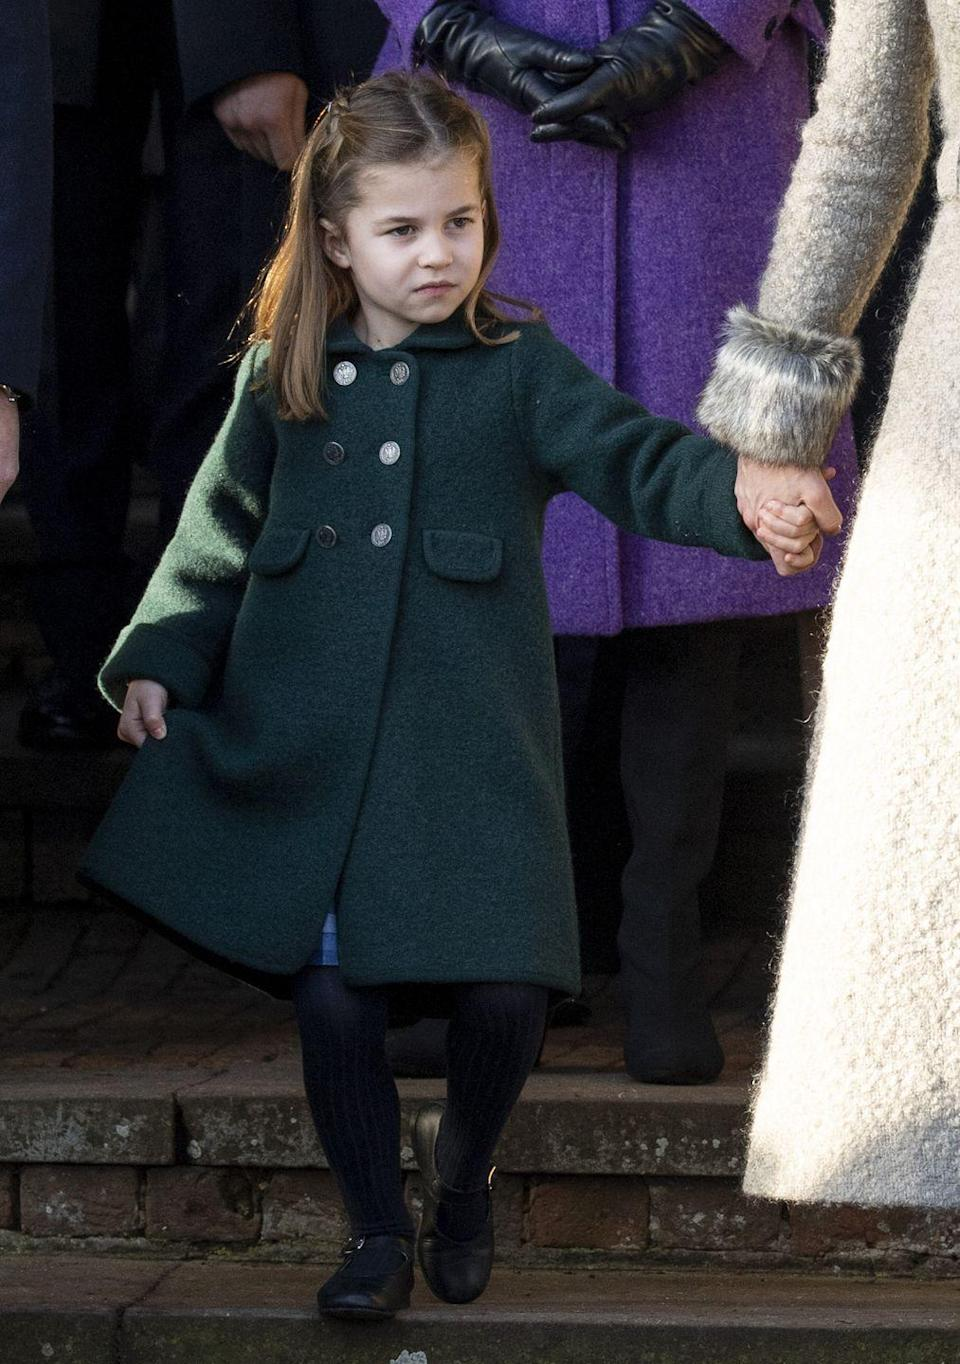 <p>Thanks to the Succession to the Crown Act of 2013, which mandated that the line of succession be governed by absolute rather than male-preference primogeniture, Princess Charlotte is the first female member of her family not to have her younger brother leapfrog over her in the line of succession. Though our chances of seeing a Queen Charlotte take the throne are slim—especially since she <em>will</em> be leapfrogged over by George's kids—it could still happen for this sassy 5-year-old!</p>